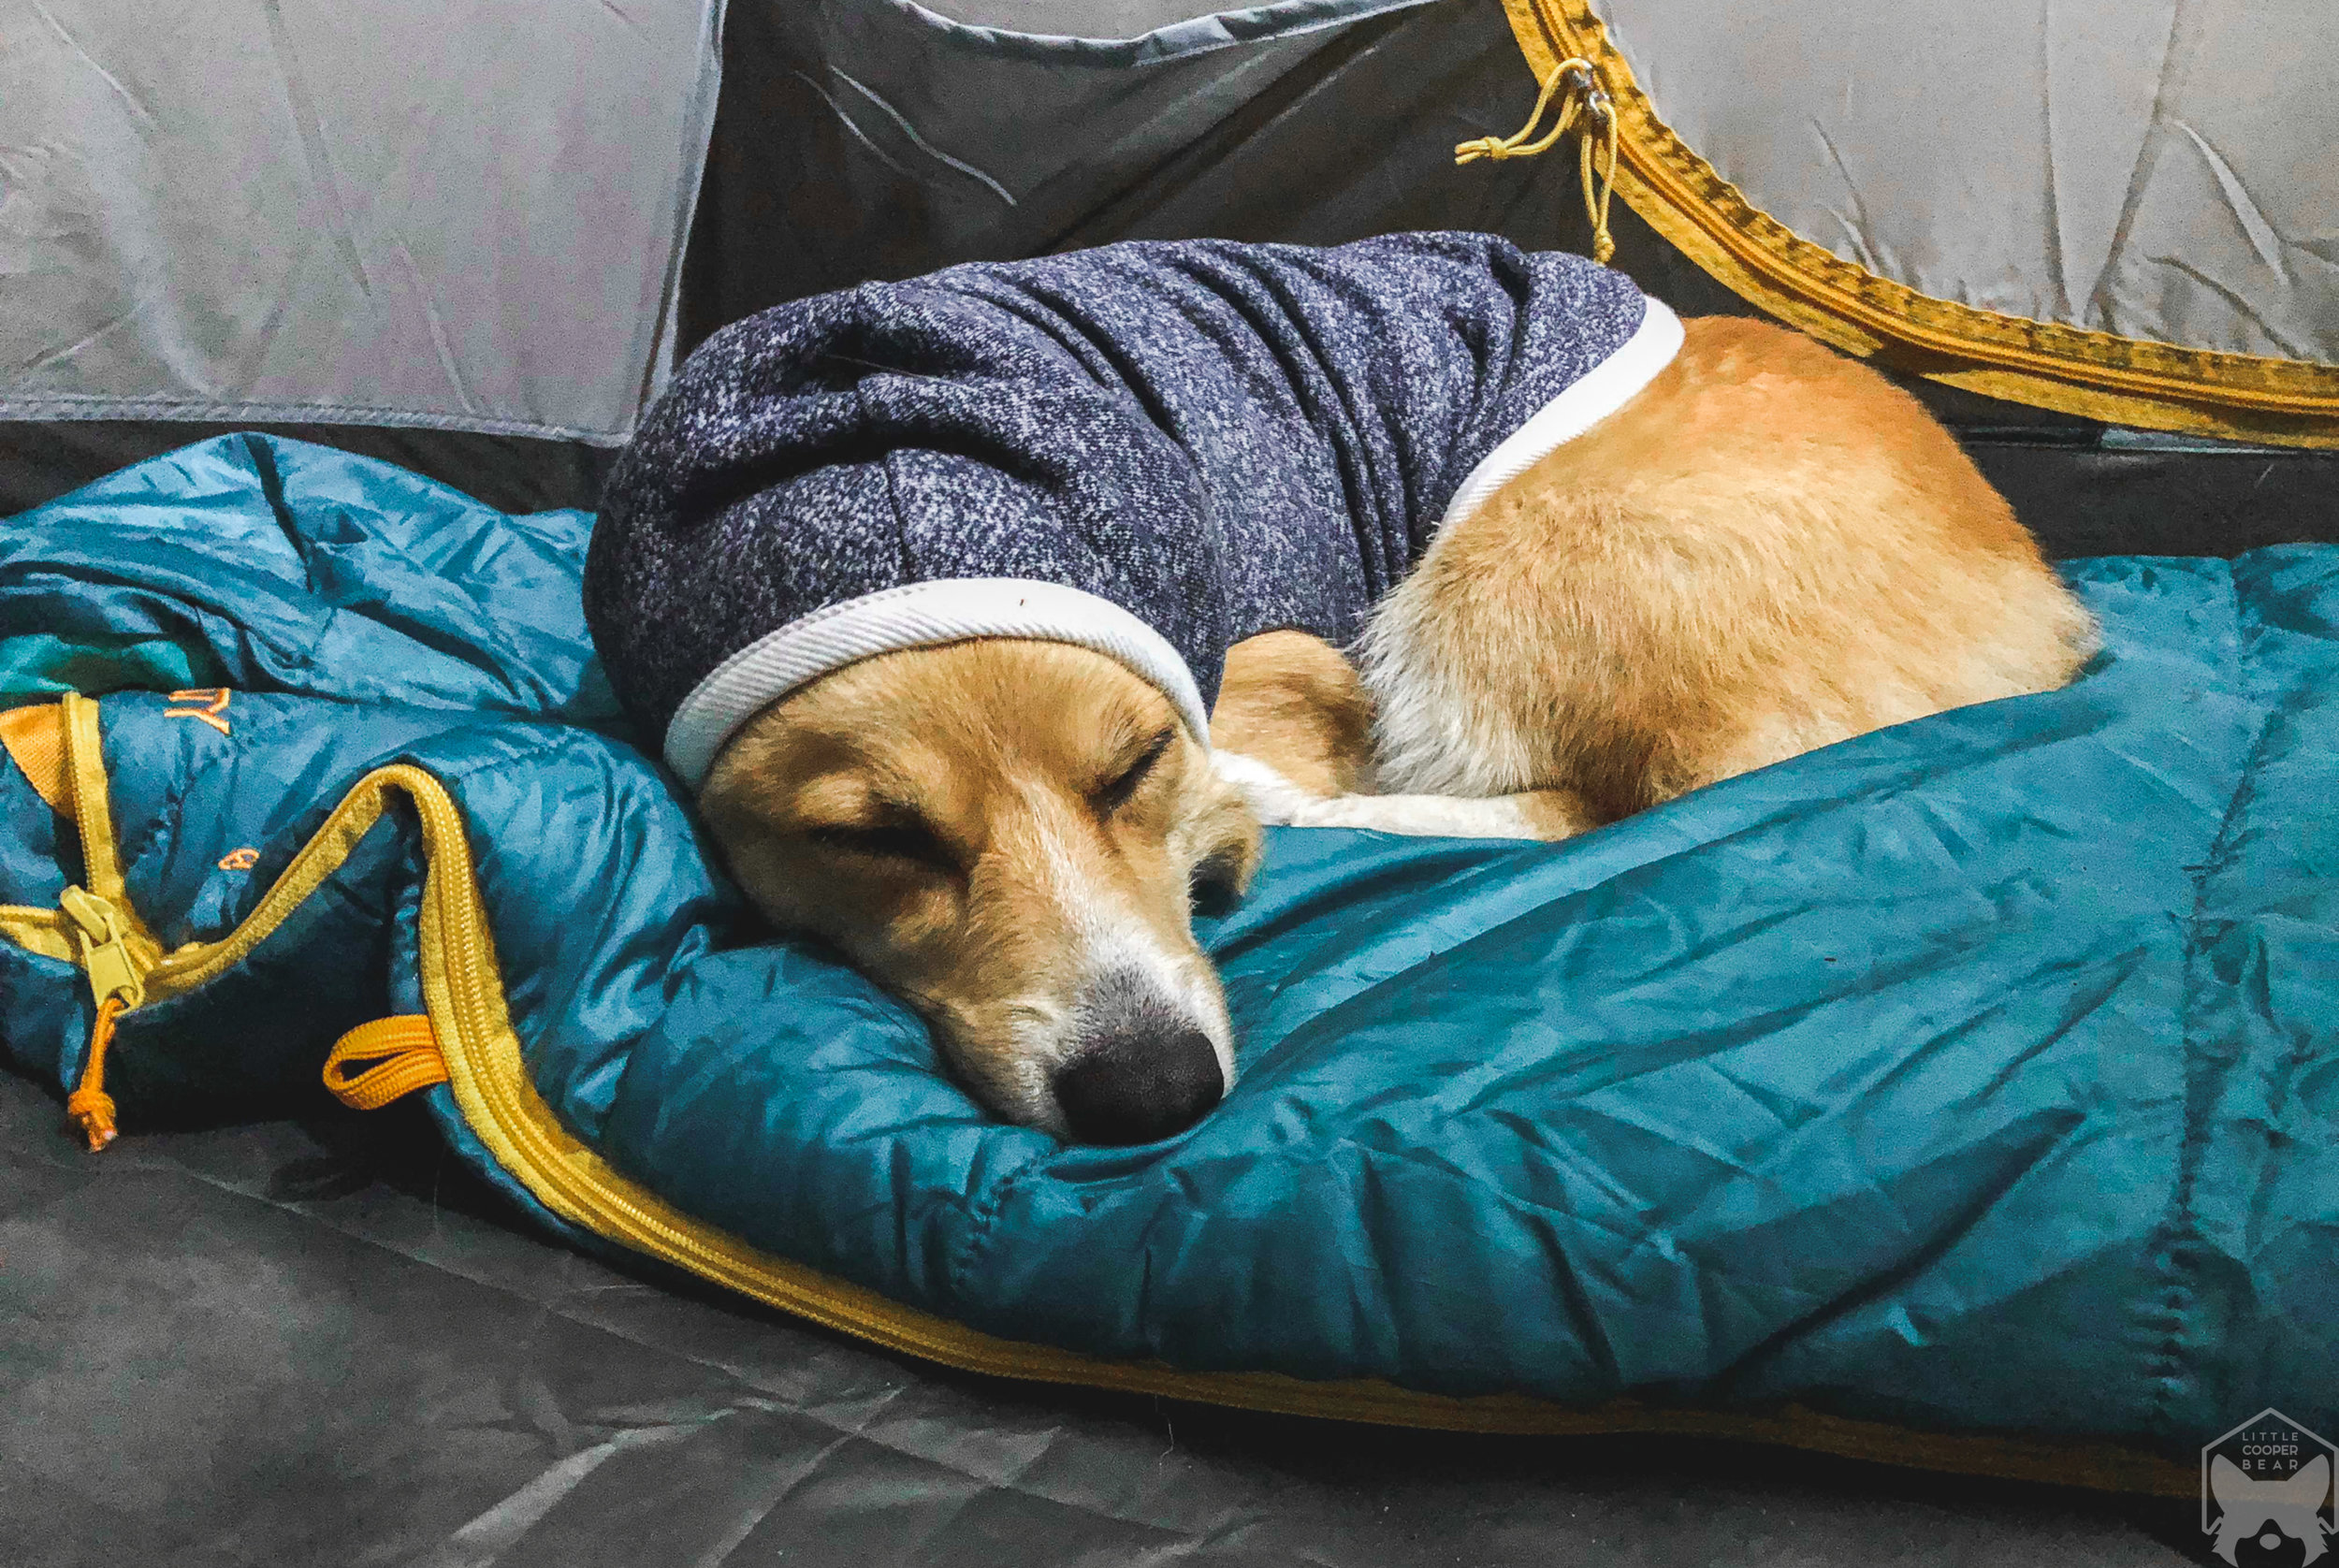 Bundled up for the night.